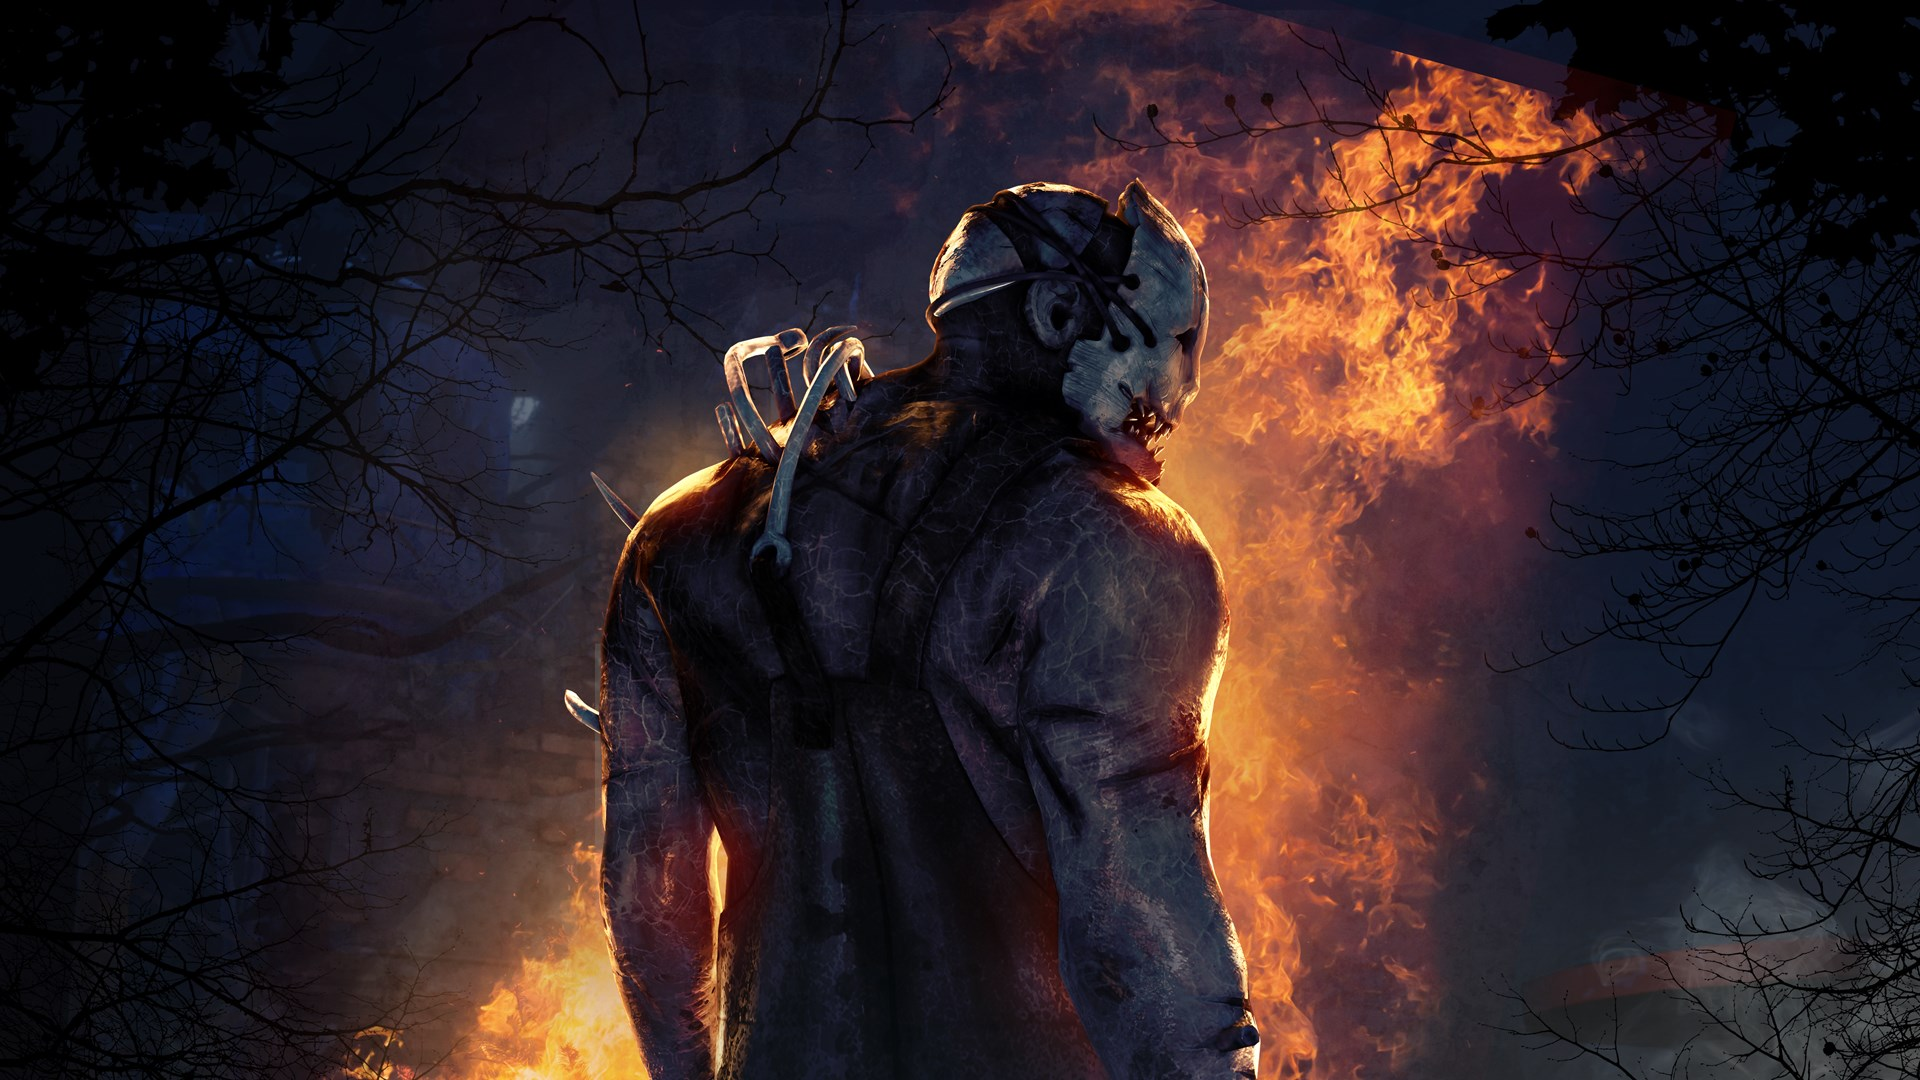 Evil Sheep Gaming: Dead by Daylight